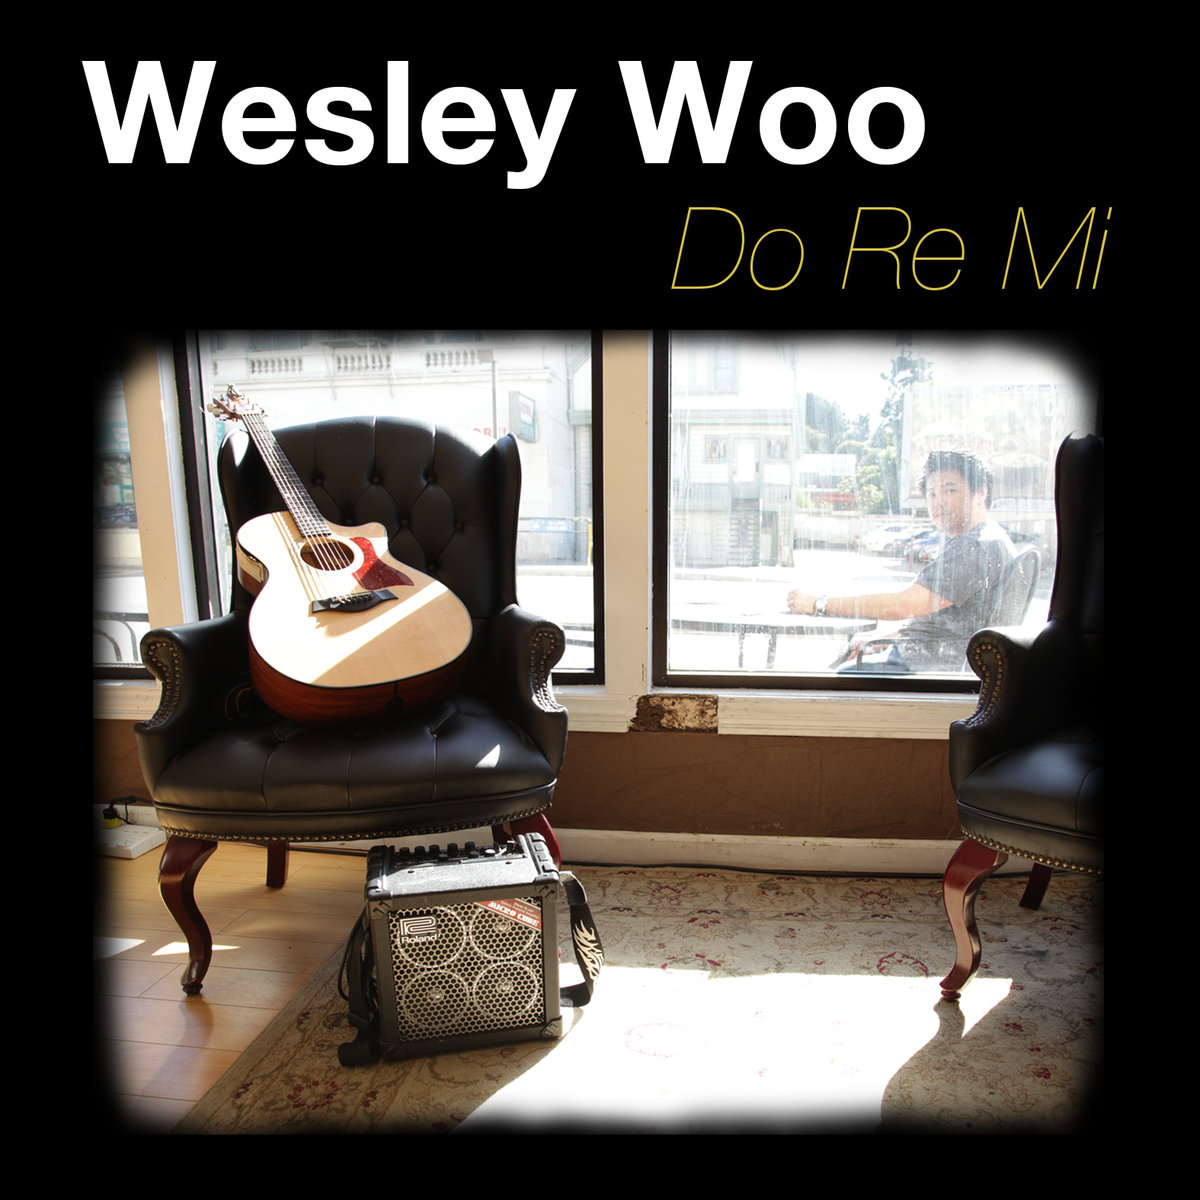 Wesley Woo - Half Past Fine @ 'Do Re Mi' album (11th ave records, 11th avenue records)